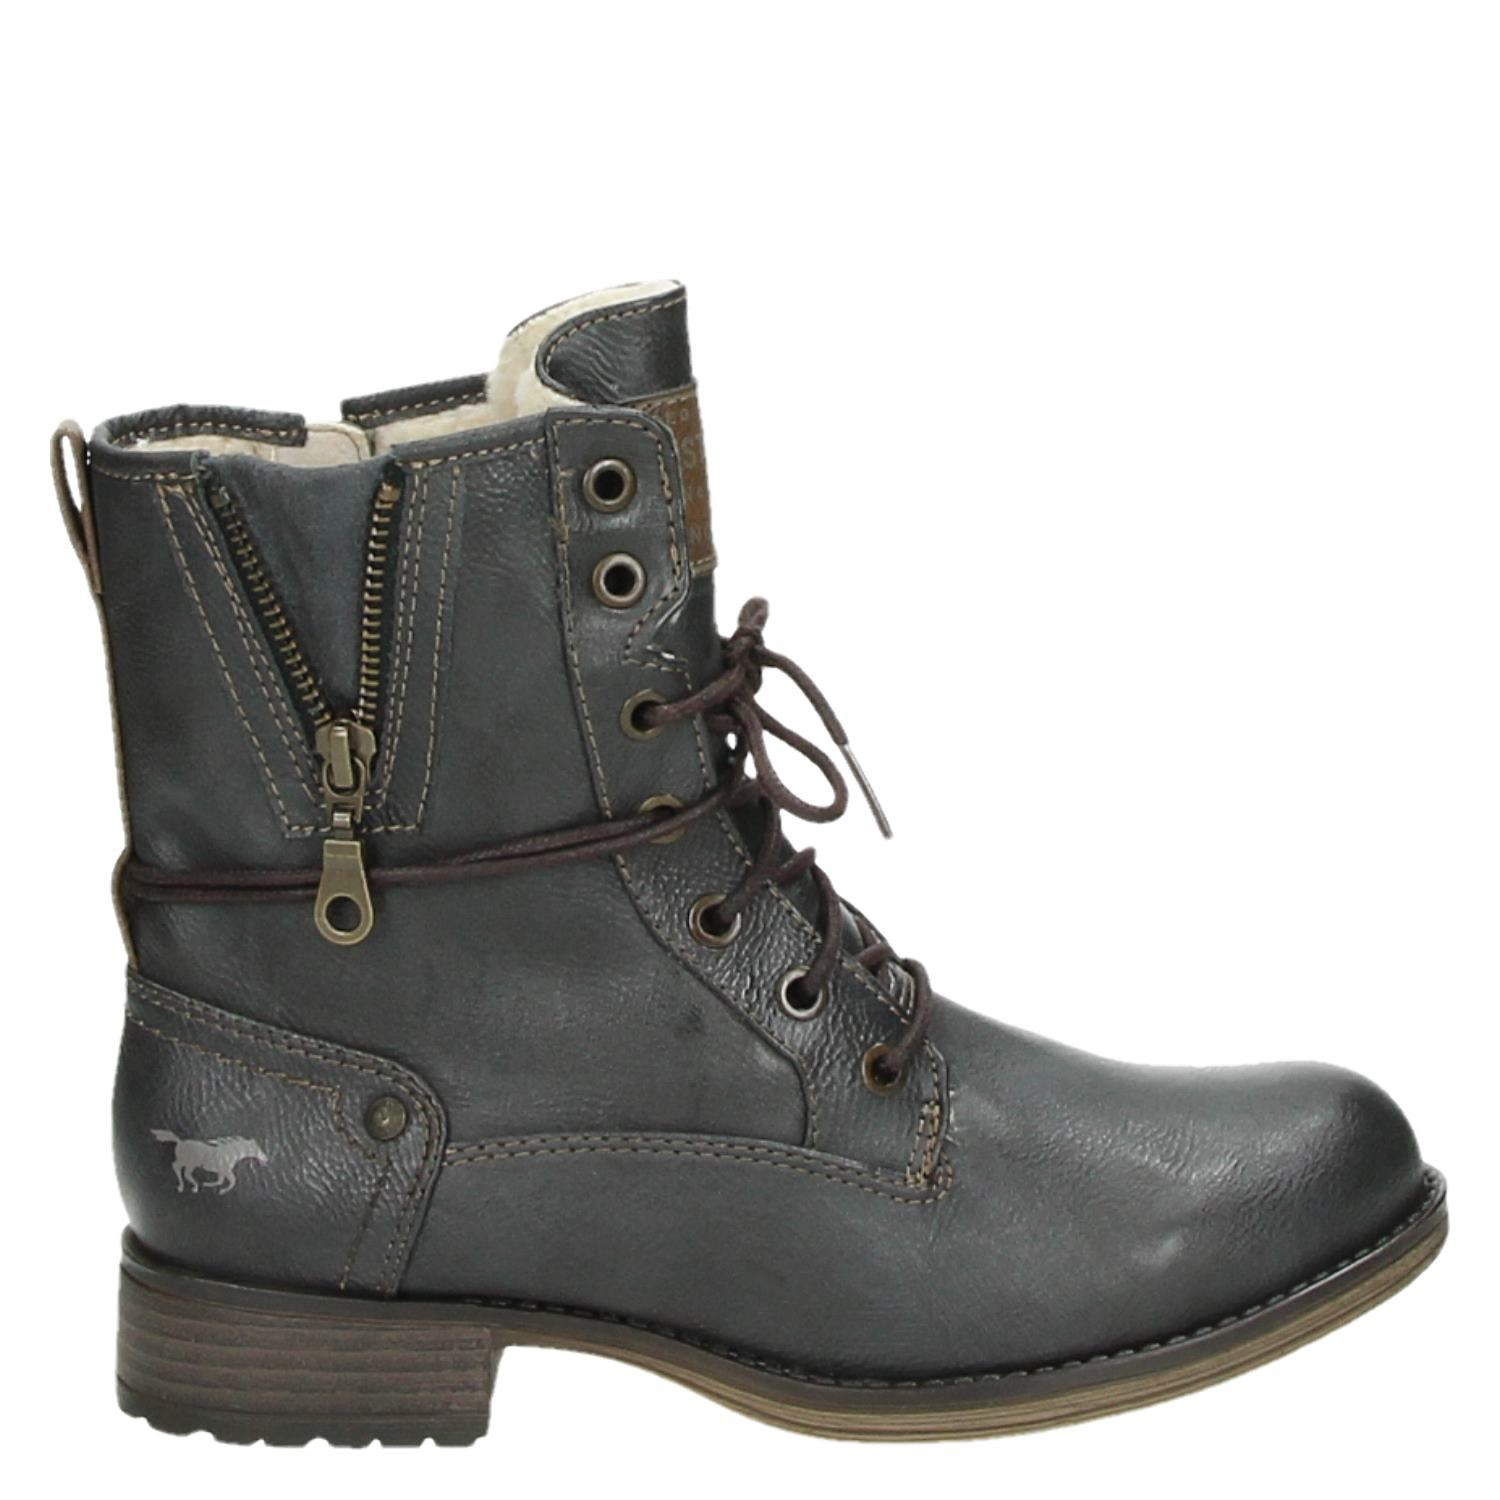 Gris Chaussure À Lacet Mustang 90wg120B